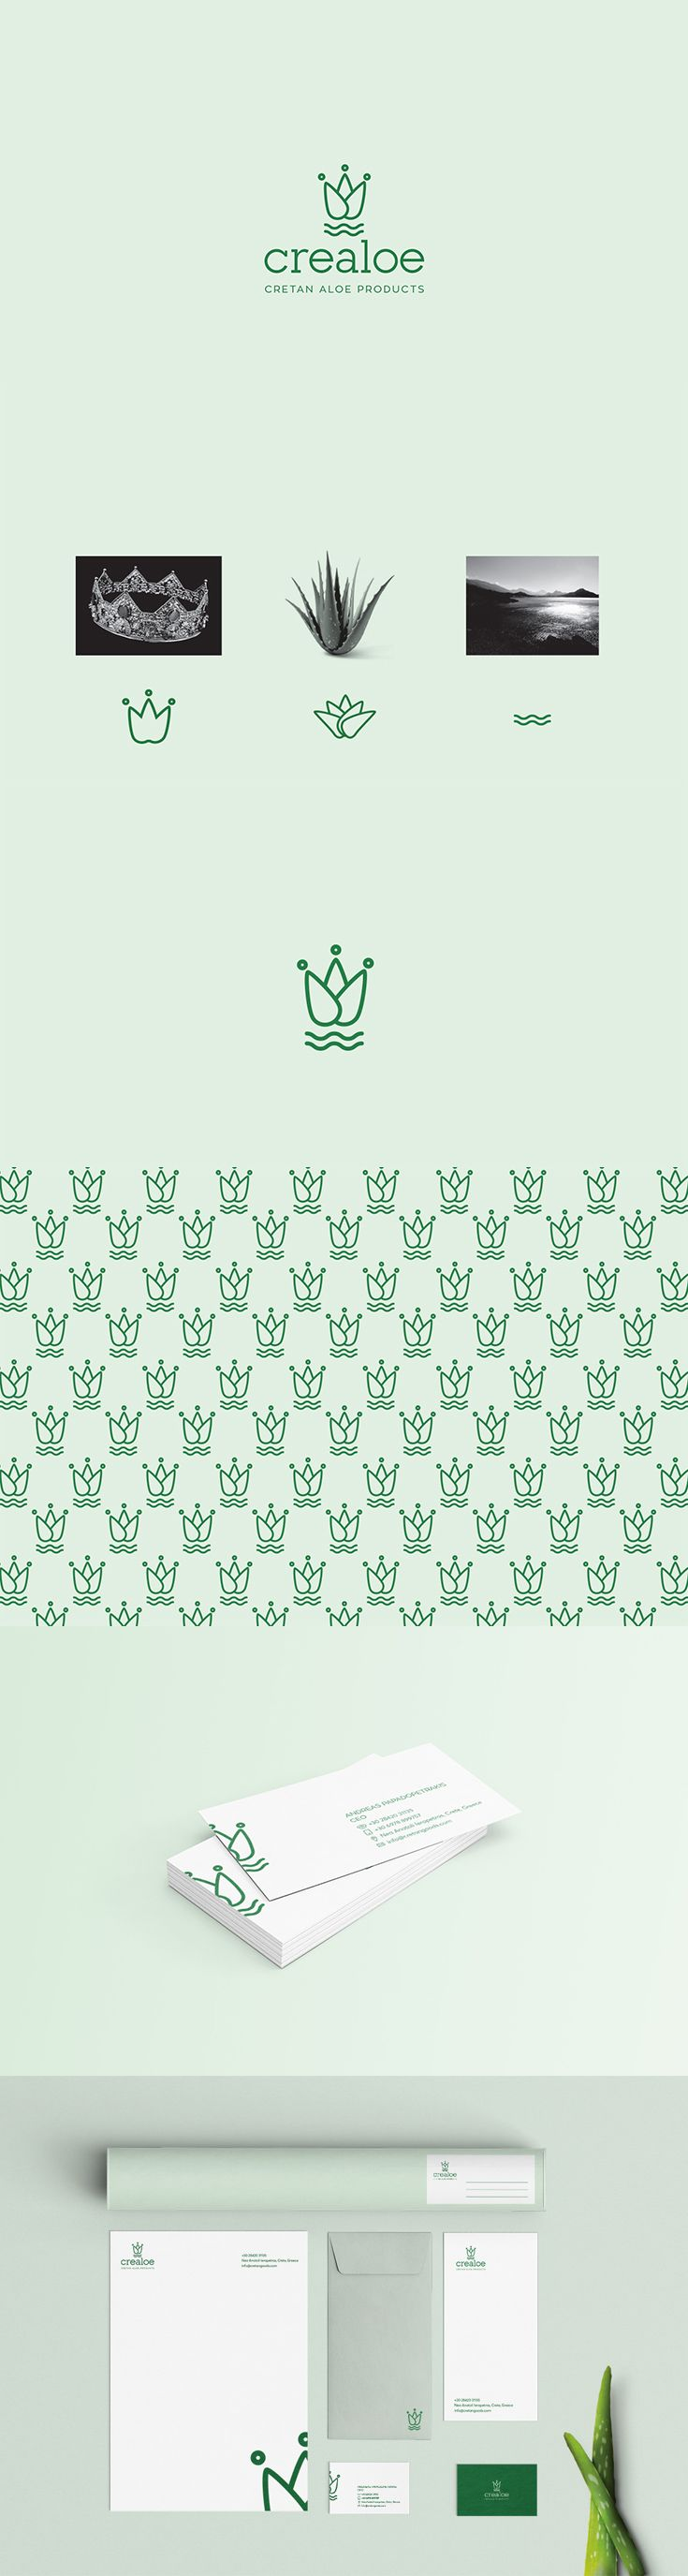 """Logotype for the company Crealoe. The word Crealoe came from the words """"Cre"""" (Cres: the first king of Crete where it got its name) and """"aloe"""" from the Aloe Vera plant which is the basic material of the company's products. The logo resulted from the union of these elements by creating a symbol that has a story to tell."""